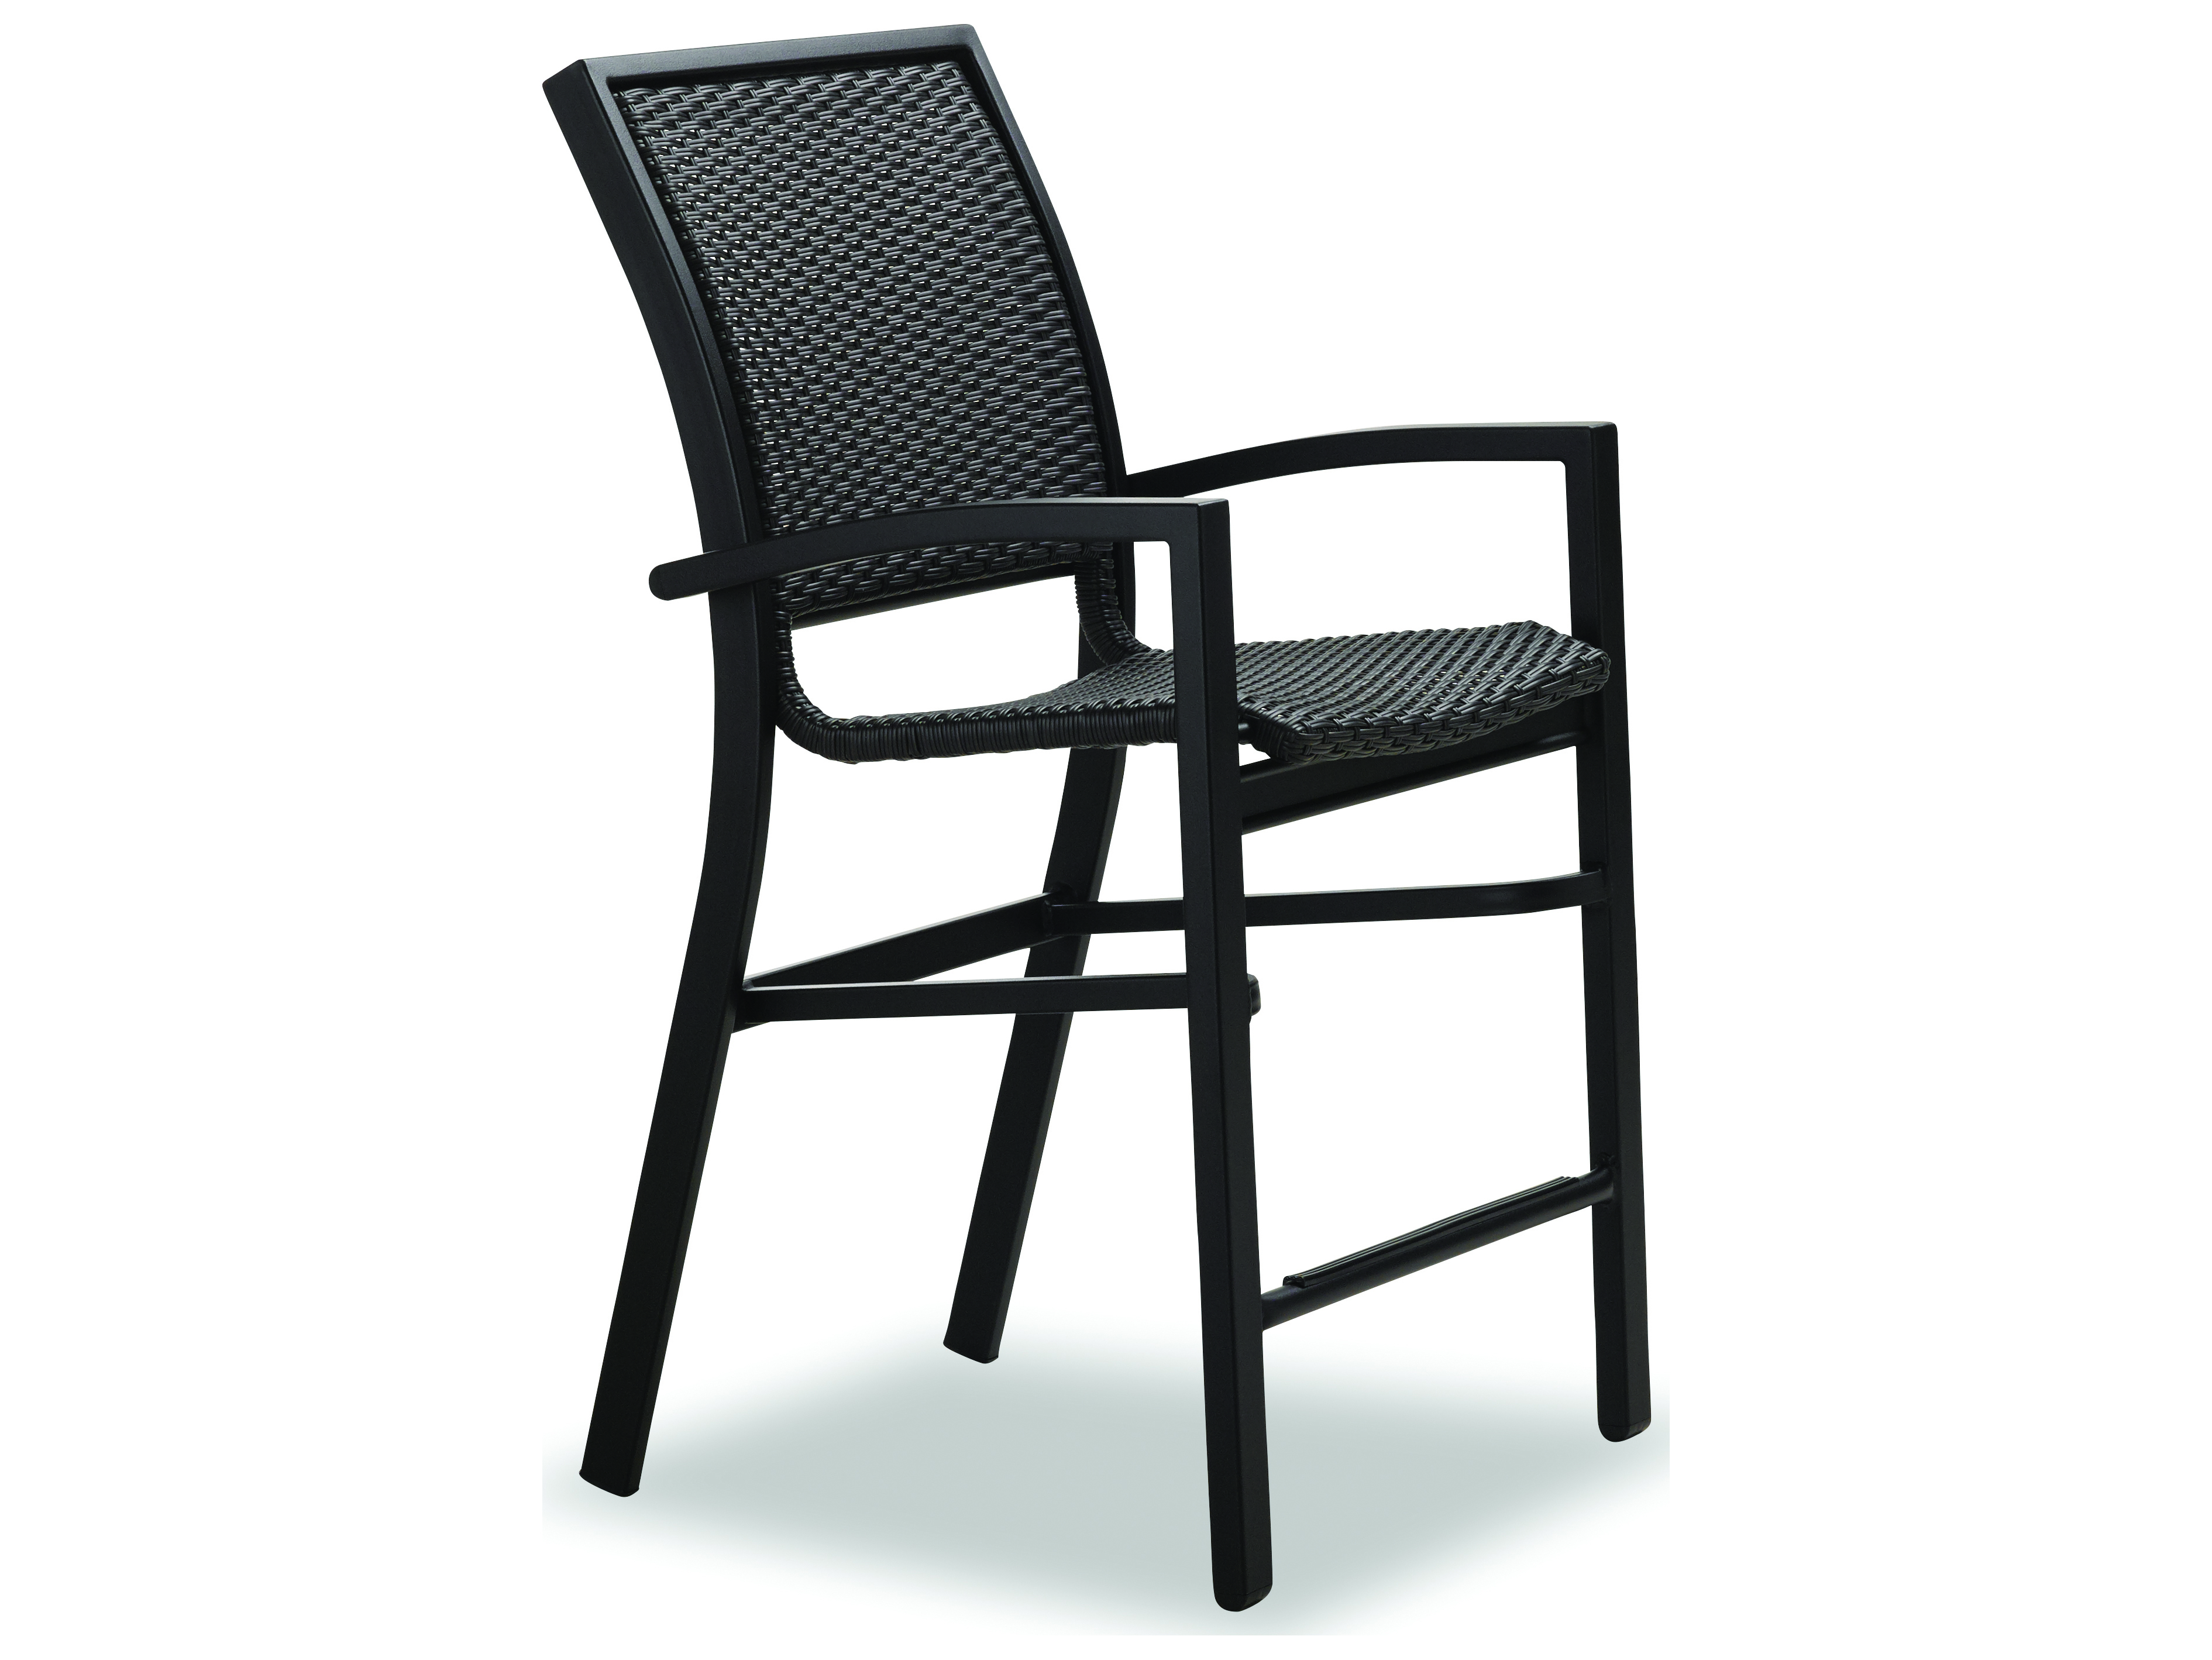 Balcony Height Patio Chairs Telescope Casual Kendall Wicker Aluminum Balcony Height